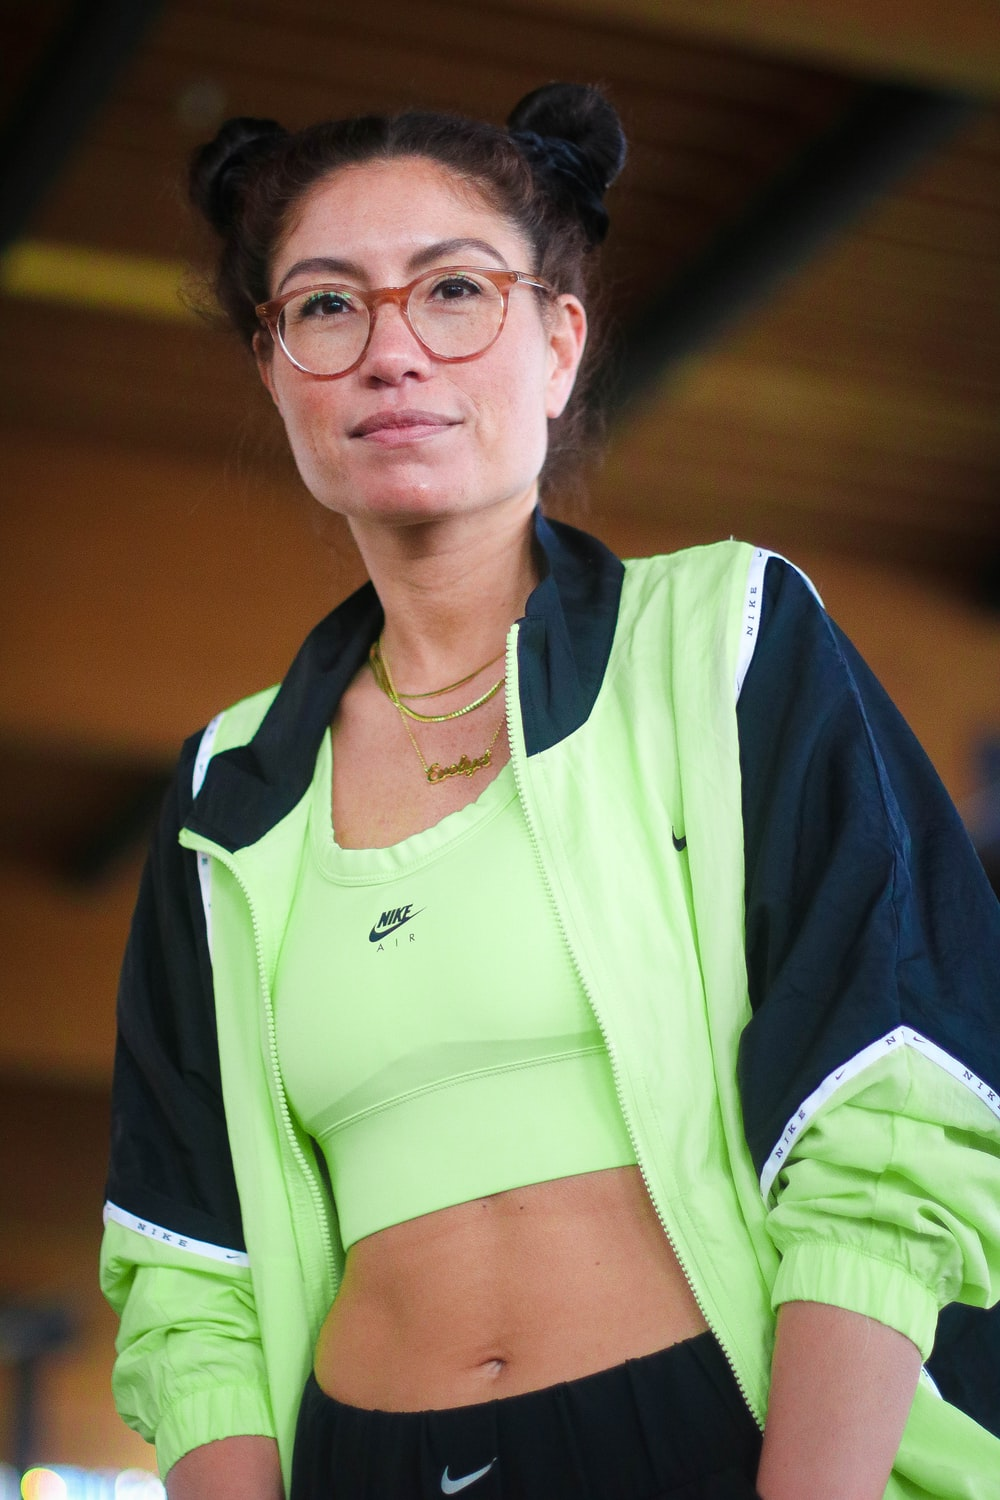 woman in yellow and blue adidas shirt wearing eyeglasses